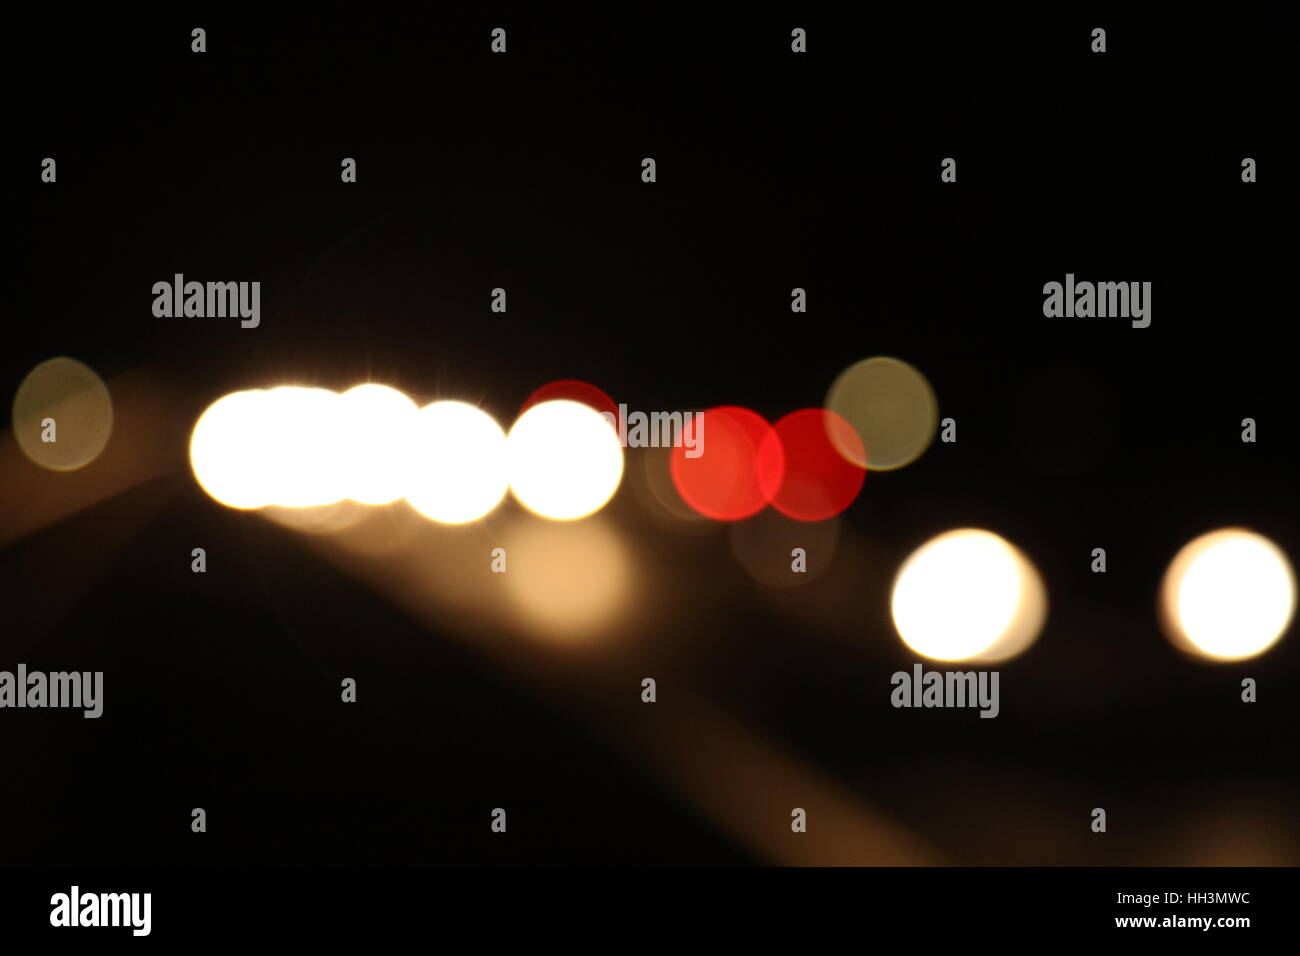 Auto in der Nacht - Stock Image